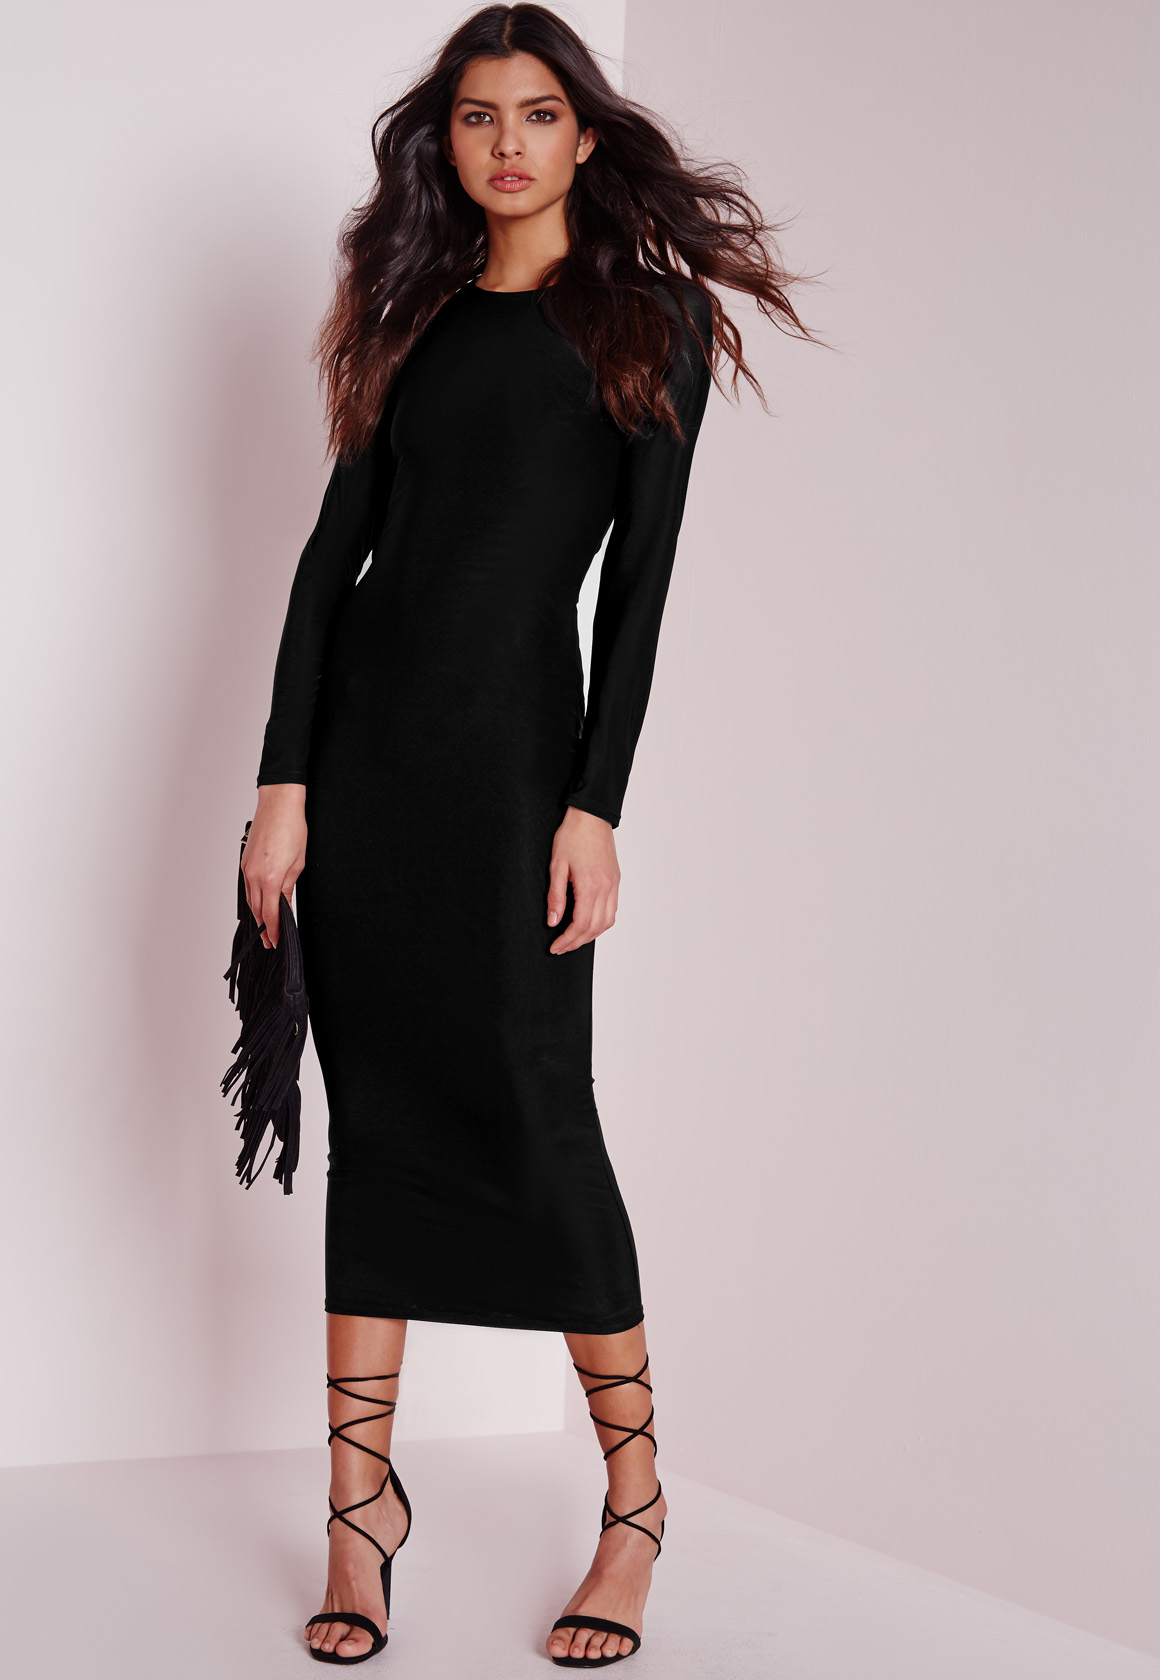 aa0829dd4fb7 Missguided Long Sleeve Lace Up Back Midi Dress Black in Black - Lyst